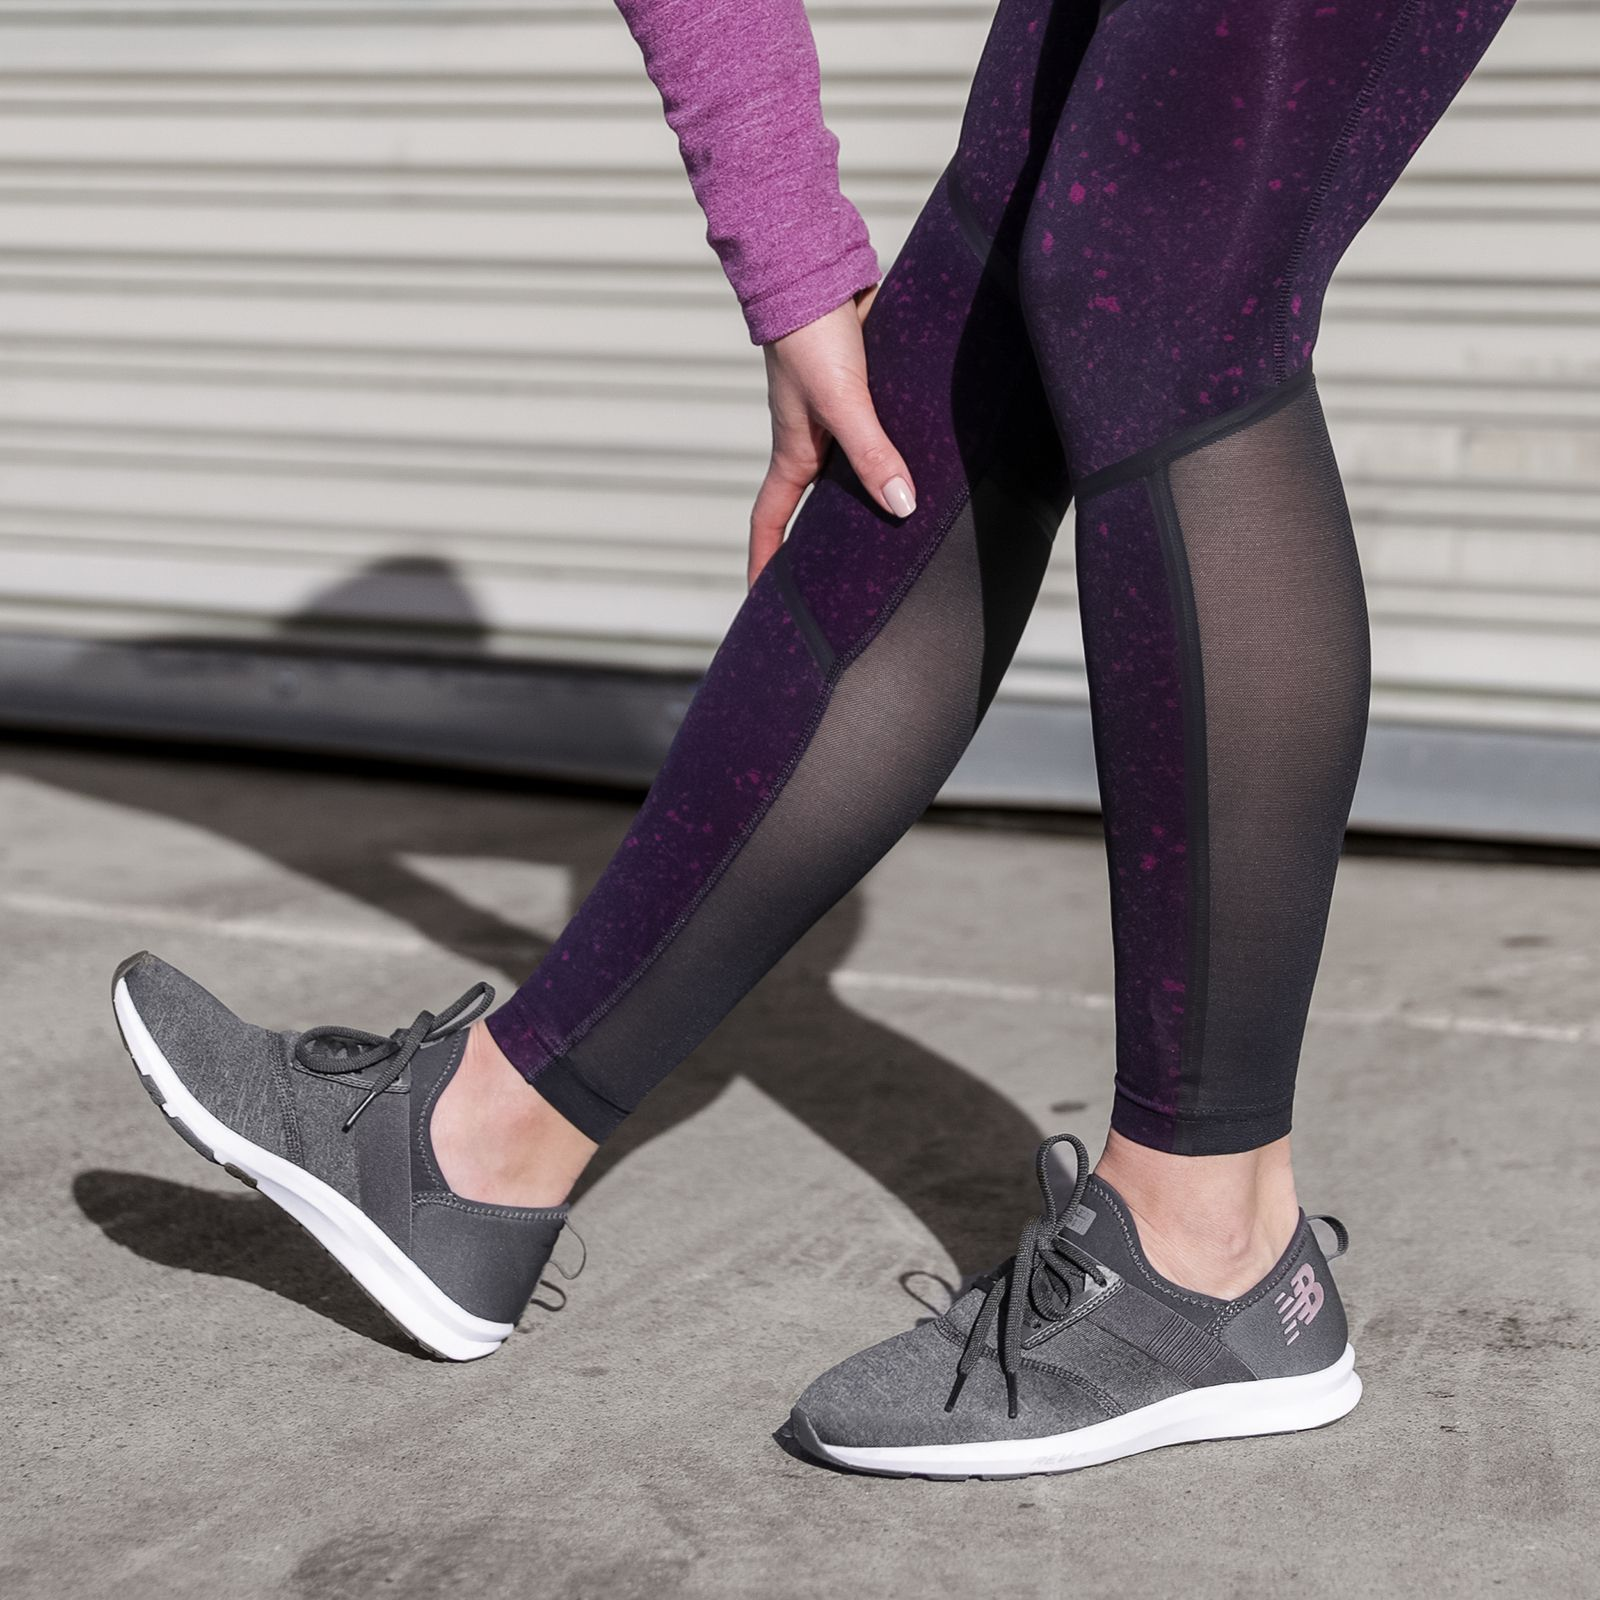 New-Balance-FuelCore-NERGIZE-1 +80 Most Inspiring Workout Shoes Ideas for Women